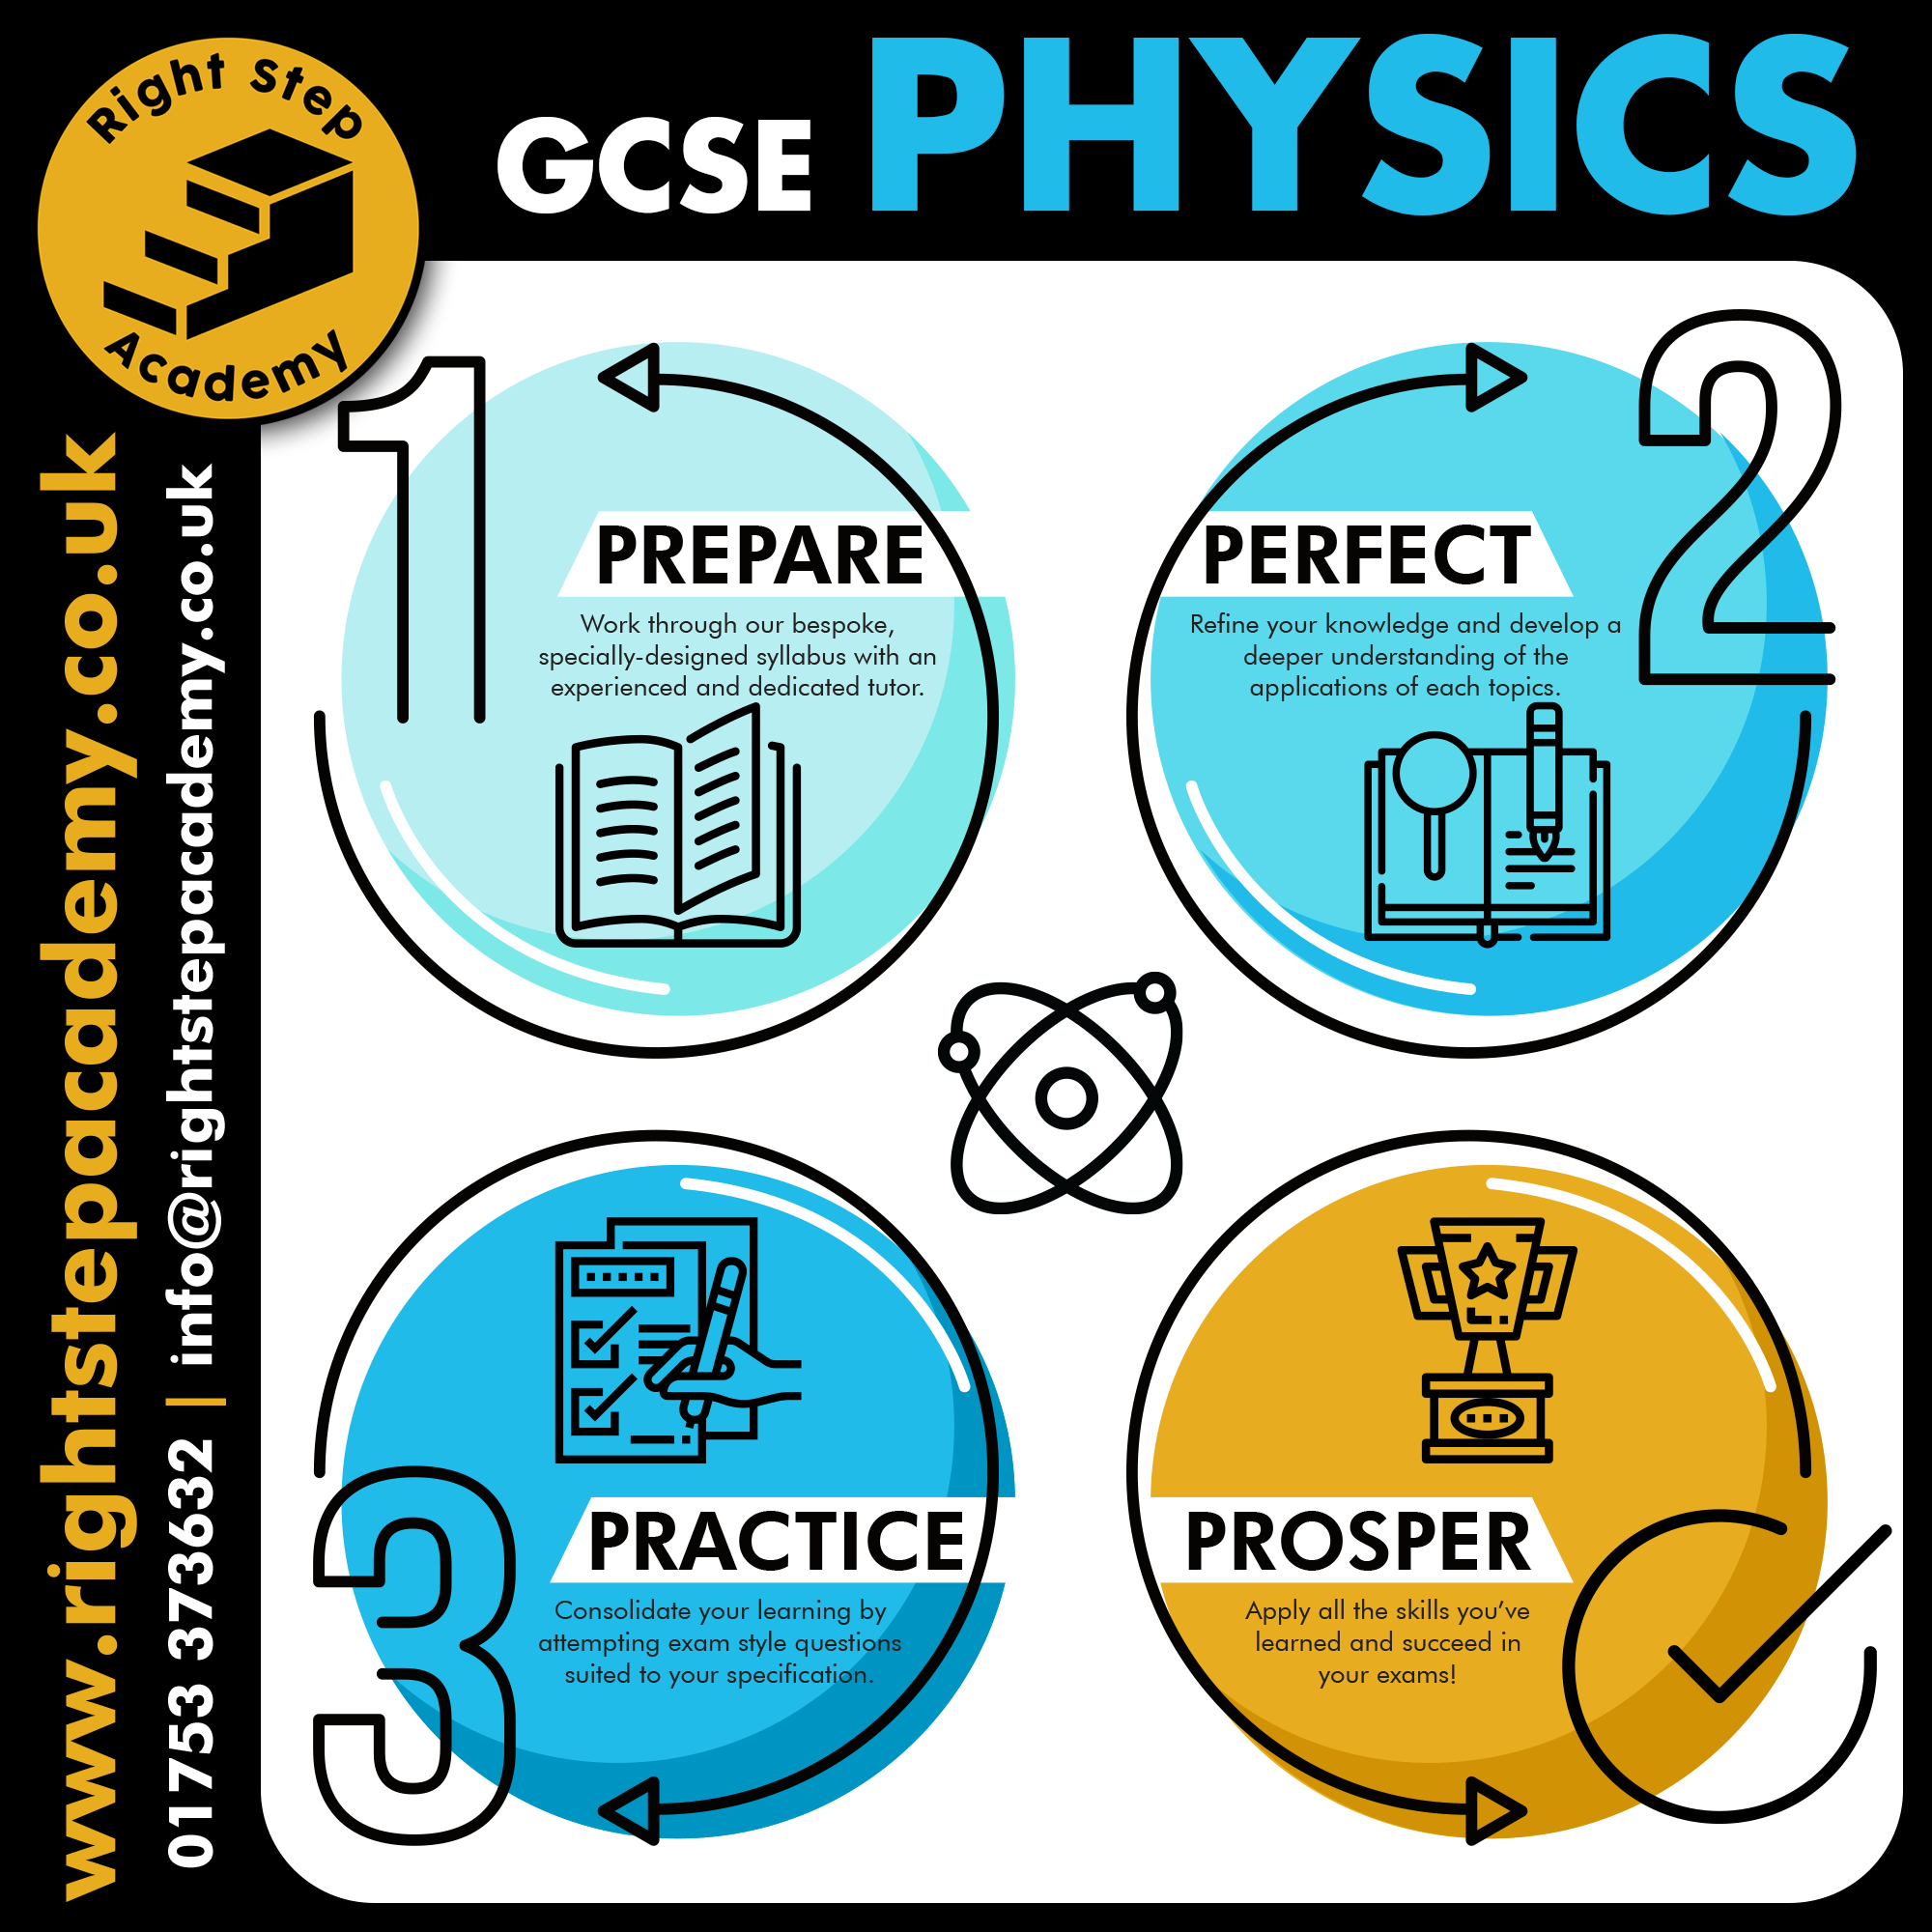 Our Process - At Right Step Academy, we follow a simple 3-step process for GCSE Physics tuition:1) All students work through our uniquely created Physics syllabus which covers each topic across the entire GCSE specification. Our course notes consist of eight packs:• Forces & Motion• Particle Model• Energy• Waves• Electricity• Magnetism• Radioactivity• AstronomyEach pack aims to establish the foundations for the topic covered in a very straightforward way, before building upon that knowledge towards the more complex, higher-level concepts.By working through the packs in this manner, we are able to ensure that the course of study is accessible, as well as personalised, for each student.2) The student revisits each individual topic using the exam board issued specification, textbooks and other learning material to fill in any gaps in their knowledge.3) To consolidate their learning and prepare for the examinations themselves, students will work through our extensive question bank, curated by our specialist content developers. With this regular question practice under timed conditions, as well as several mock assessment dates scheduled throughout the year, students will become thoroughly primed for success in their exam.